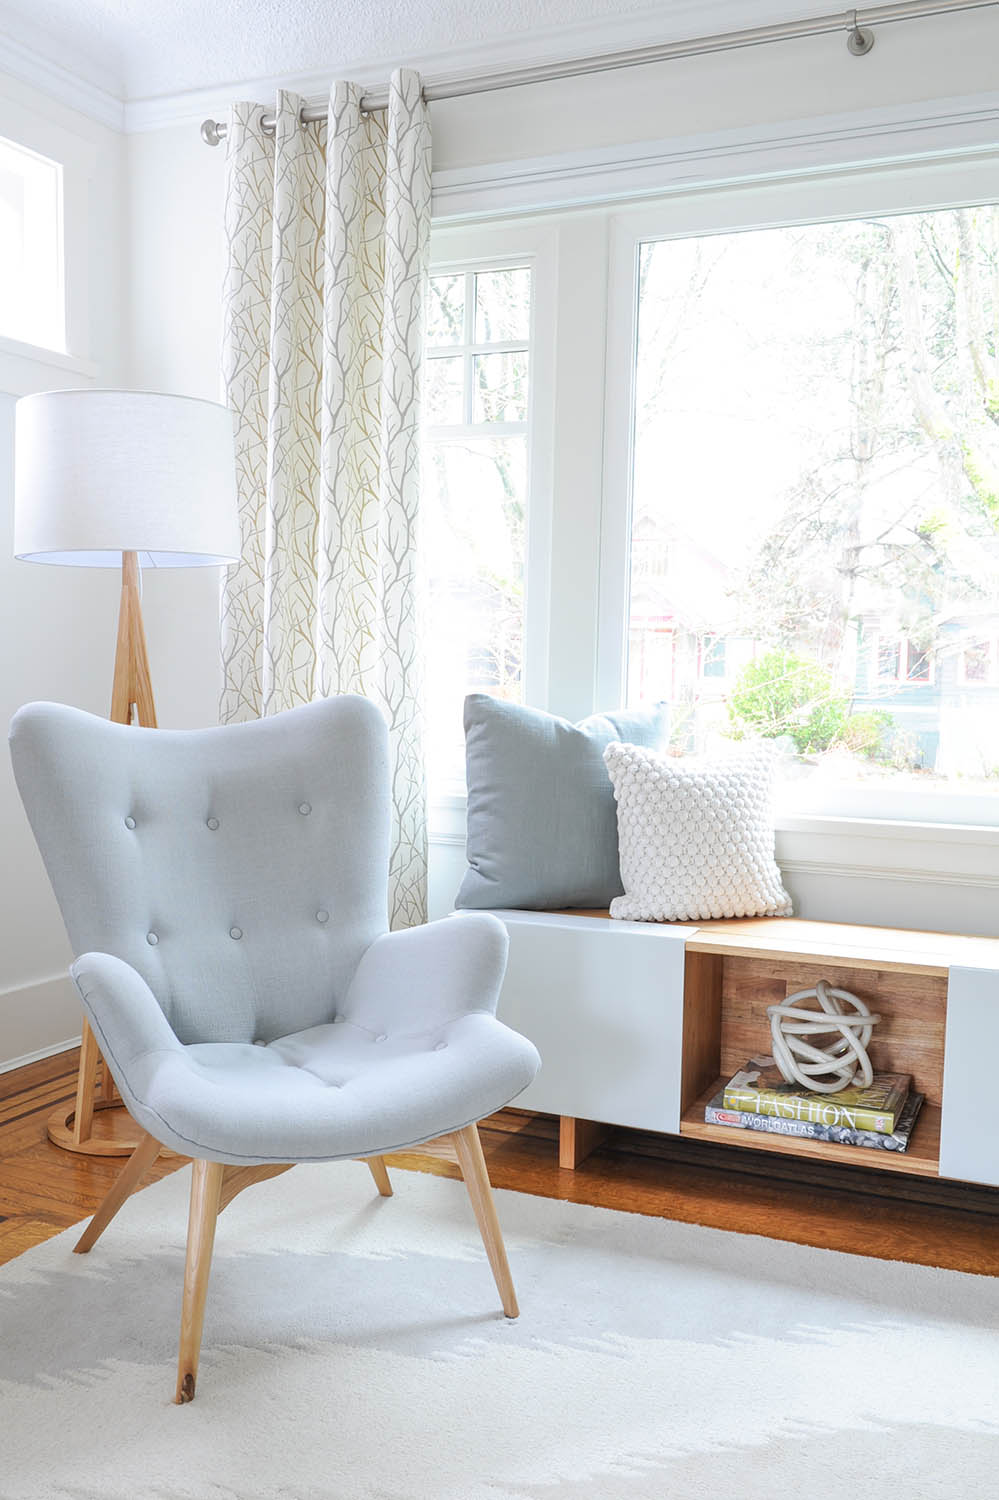 Vancouver interior design simply home decorating scandinavian inspired home 06